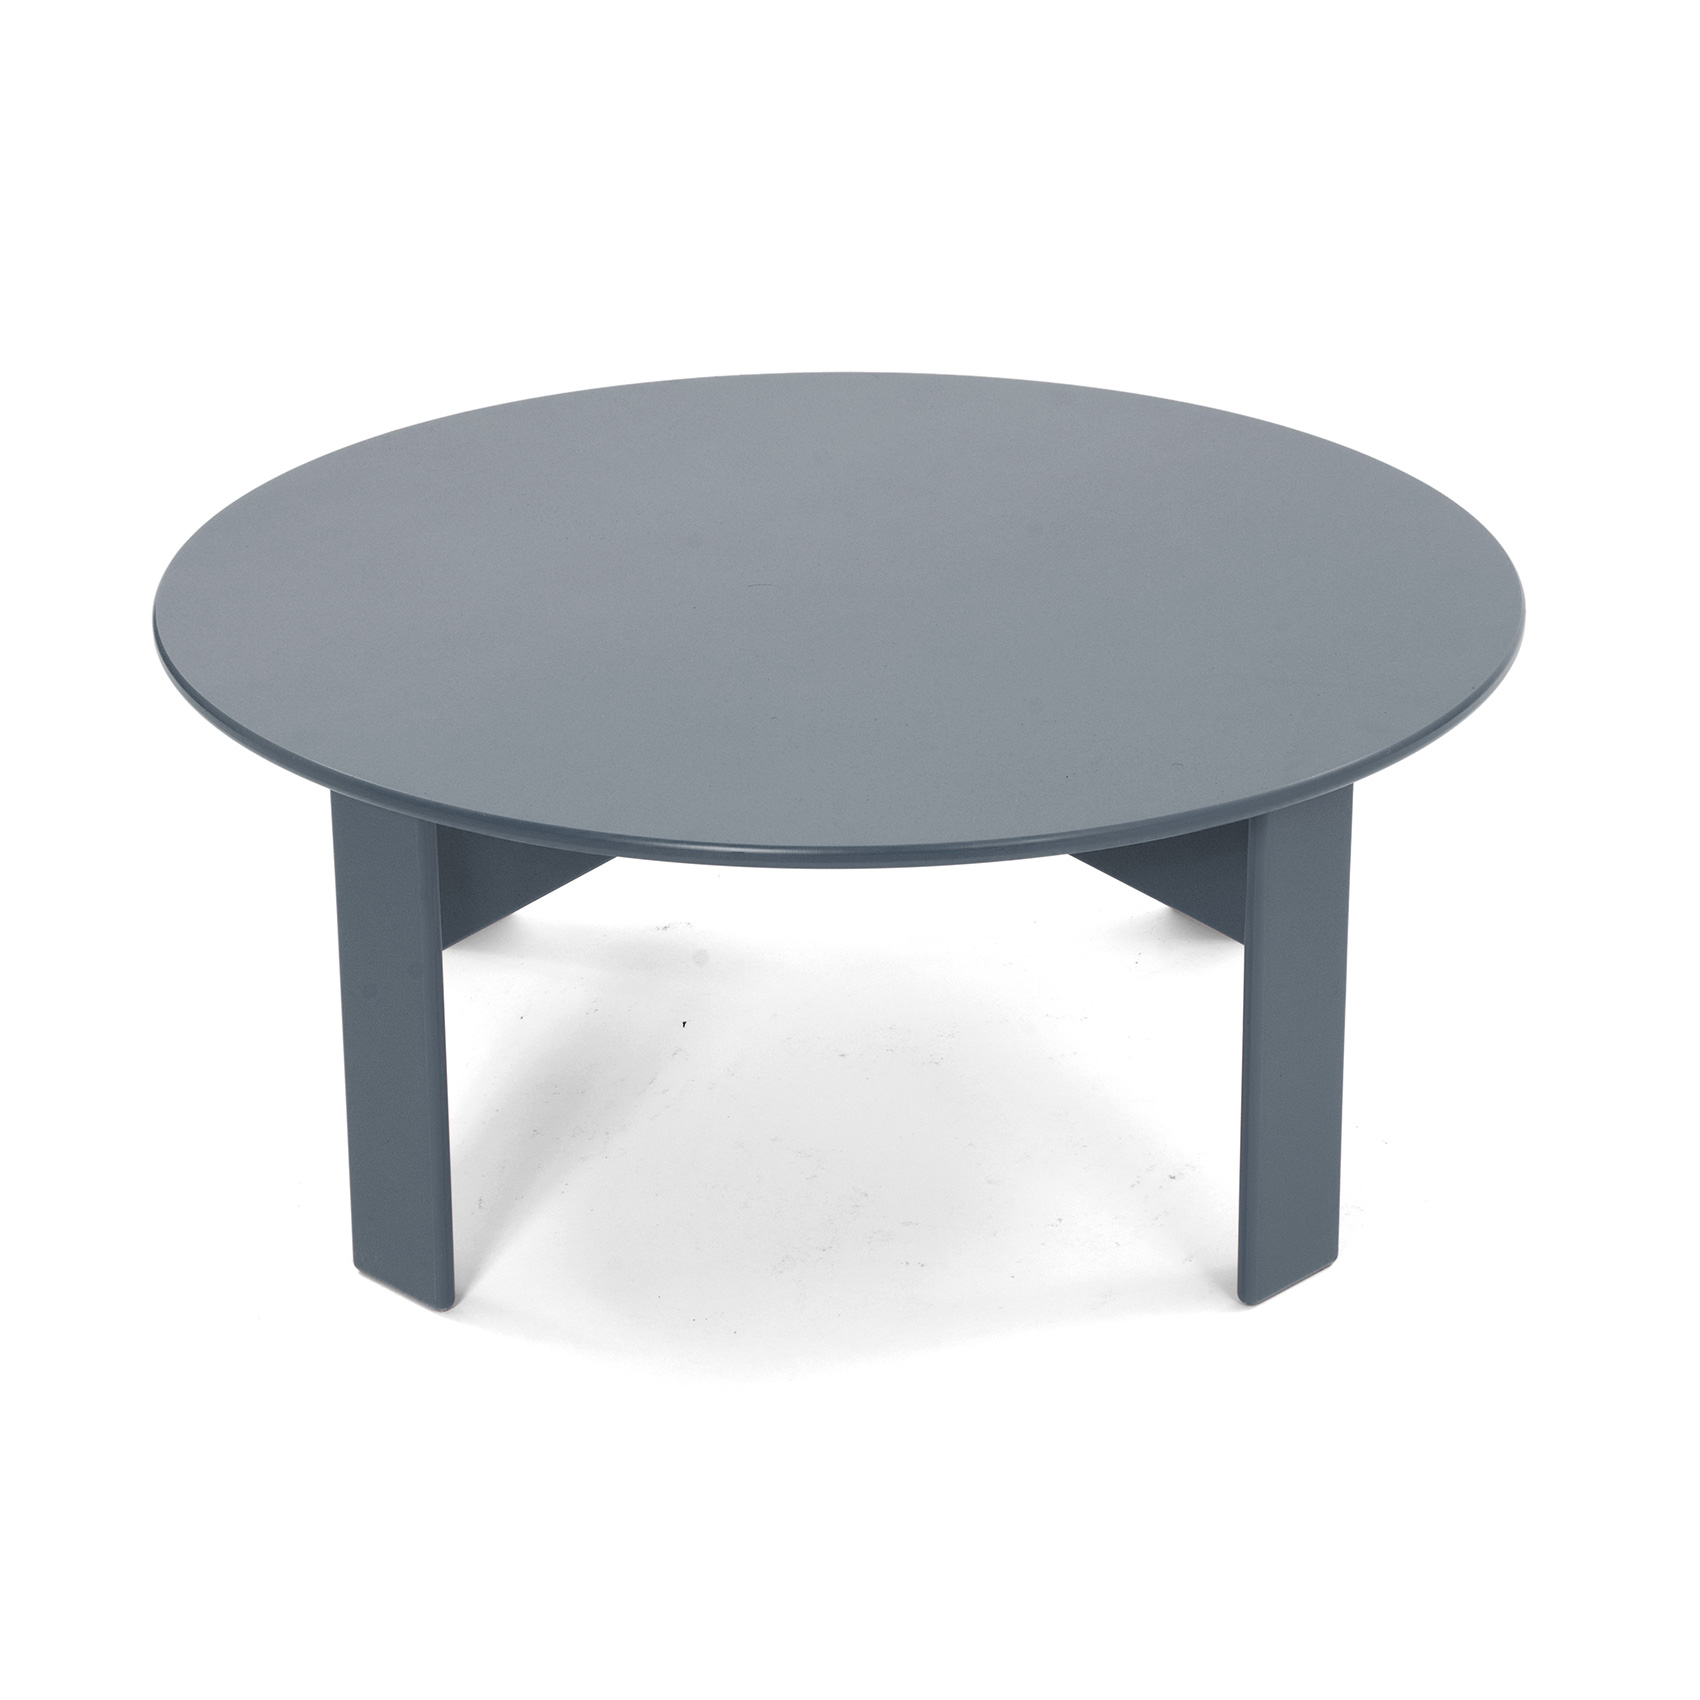 table porch coffee plastic garden side aluminum outdoor folding and end sets full size ashley furniture chair half grey linen tablecloth clearance tiffany style bedside lamps